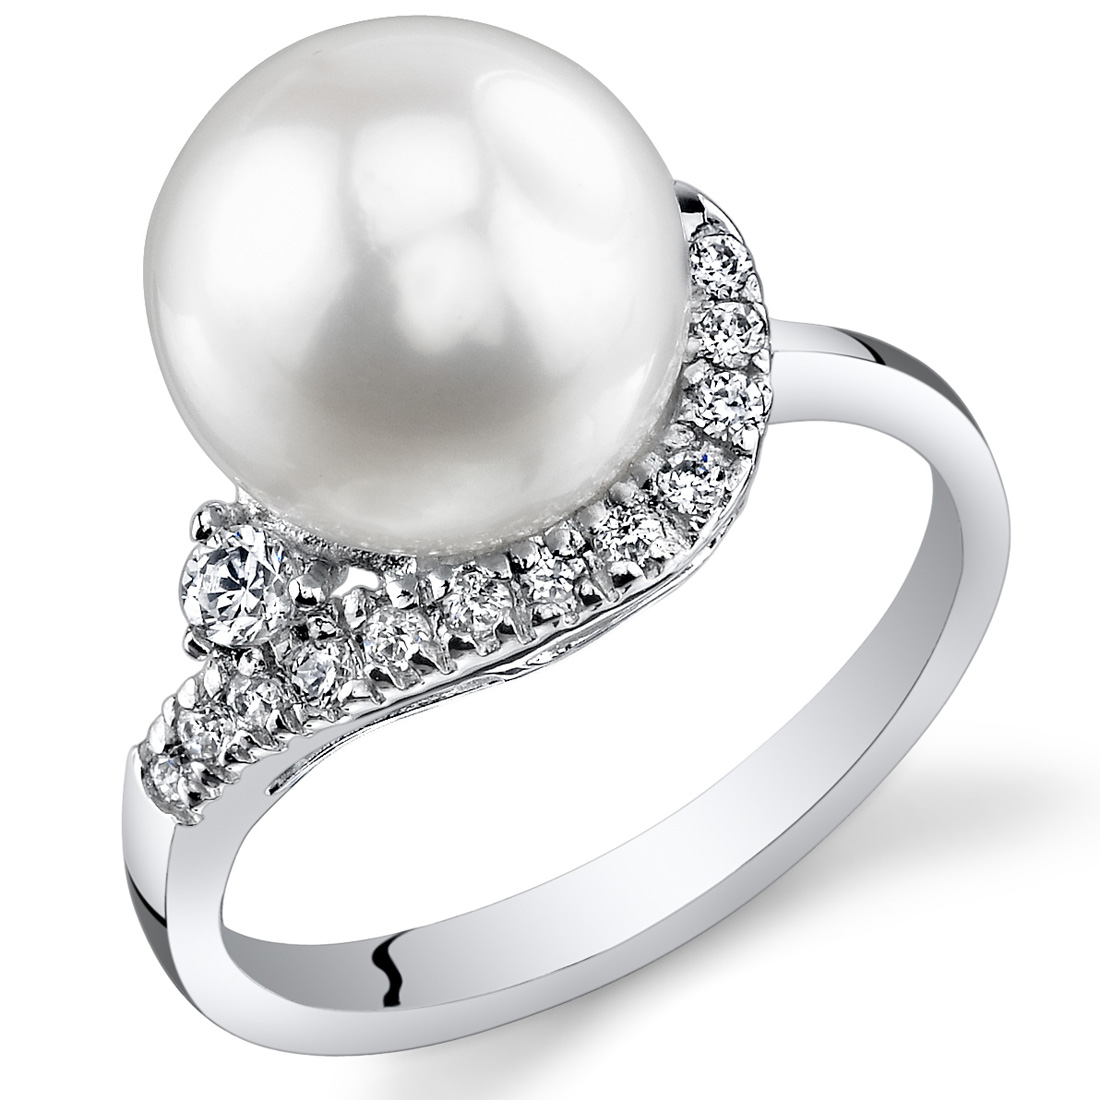 925 Sterling Silver Rhodium-plated 8-9mm White Freshwater Cultured Pearl Cubic Zirconia Ring